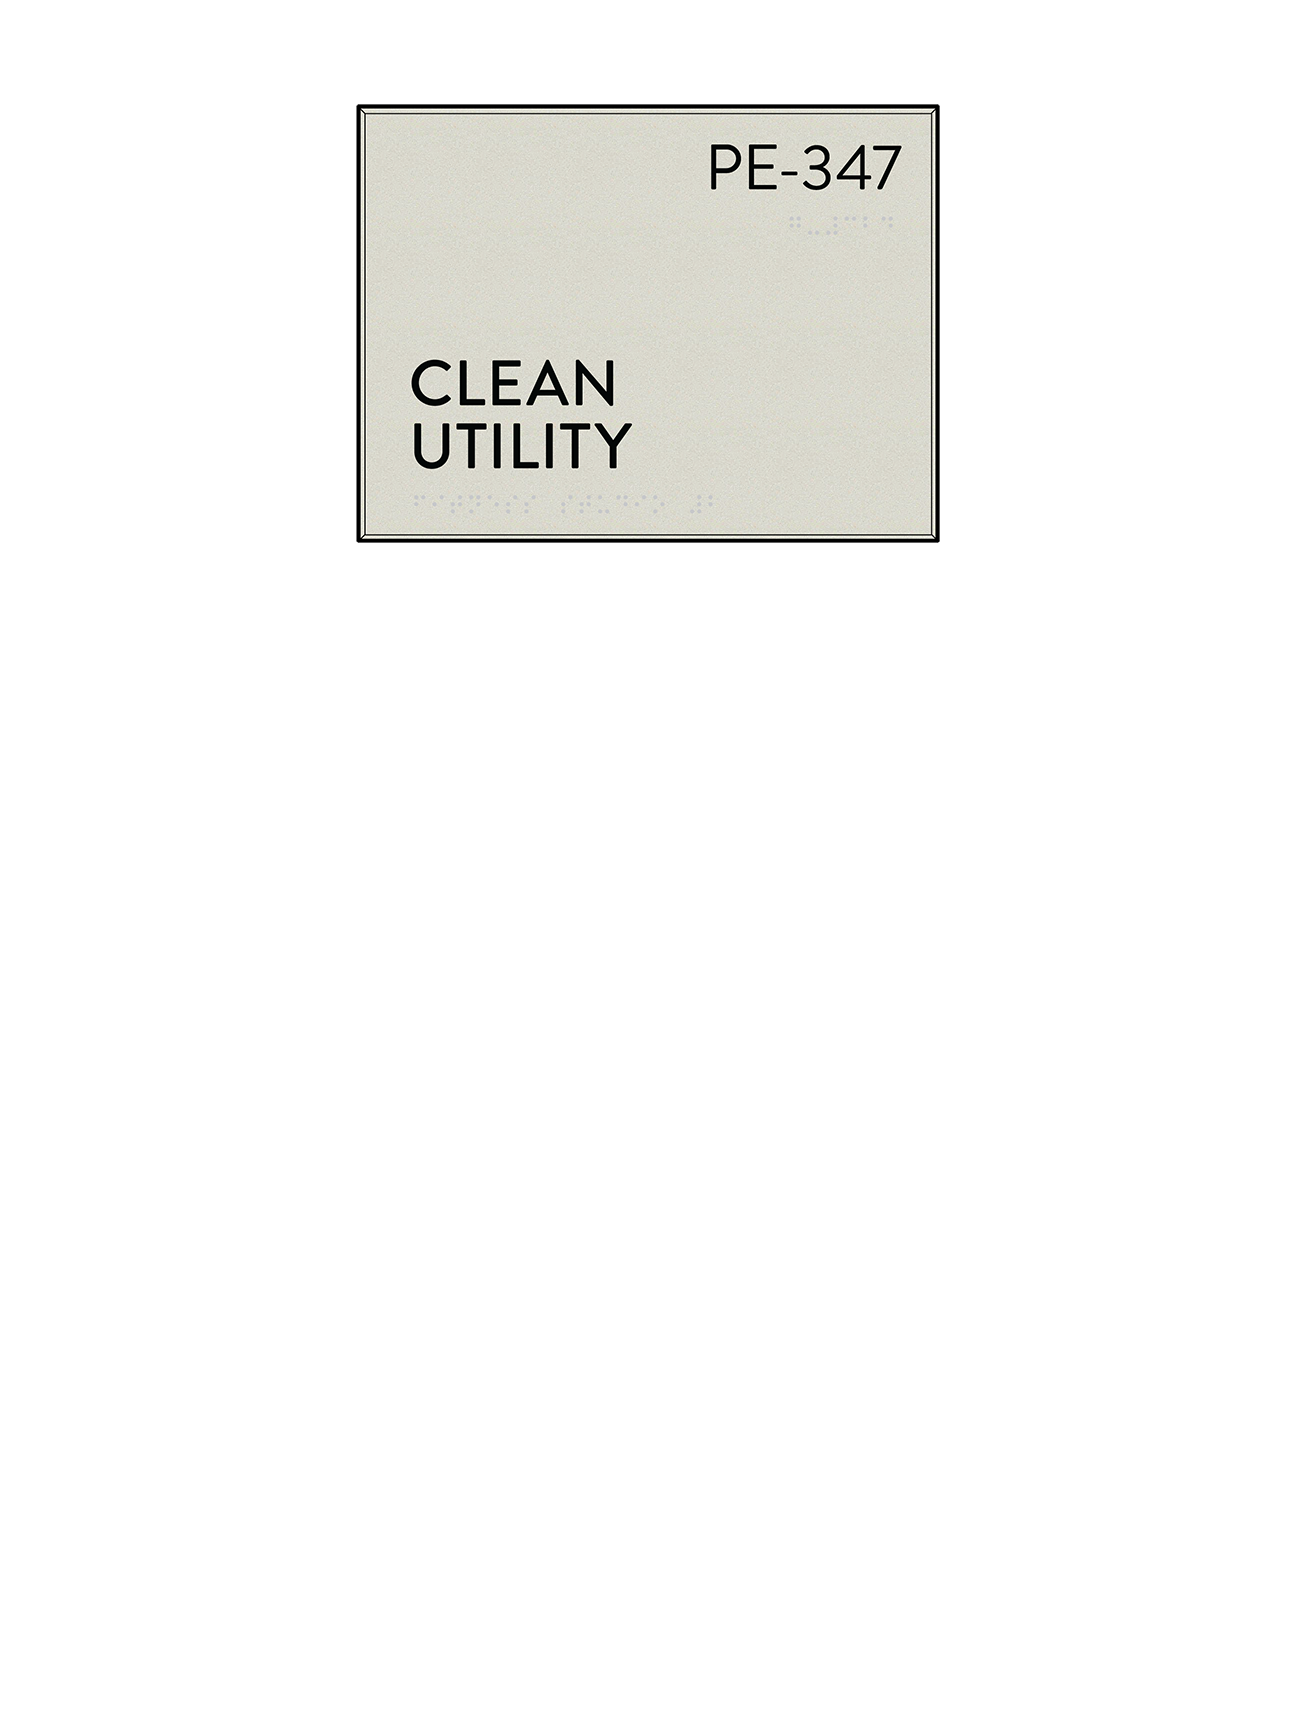 Utility Room Sign Endearing Price Request  Cascade Architectural Sign Family  Identia Sign Review